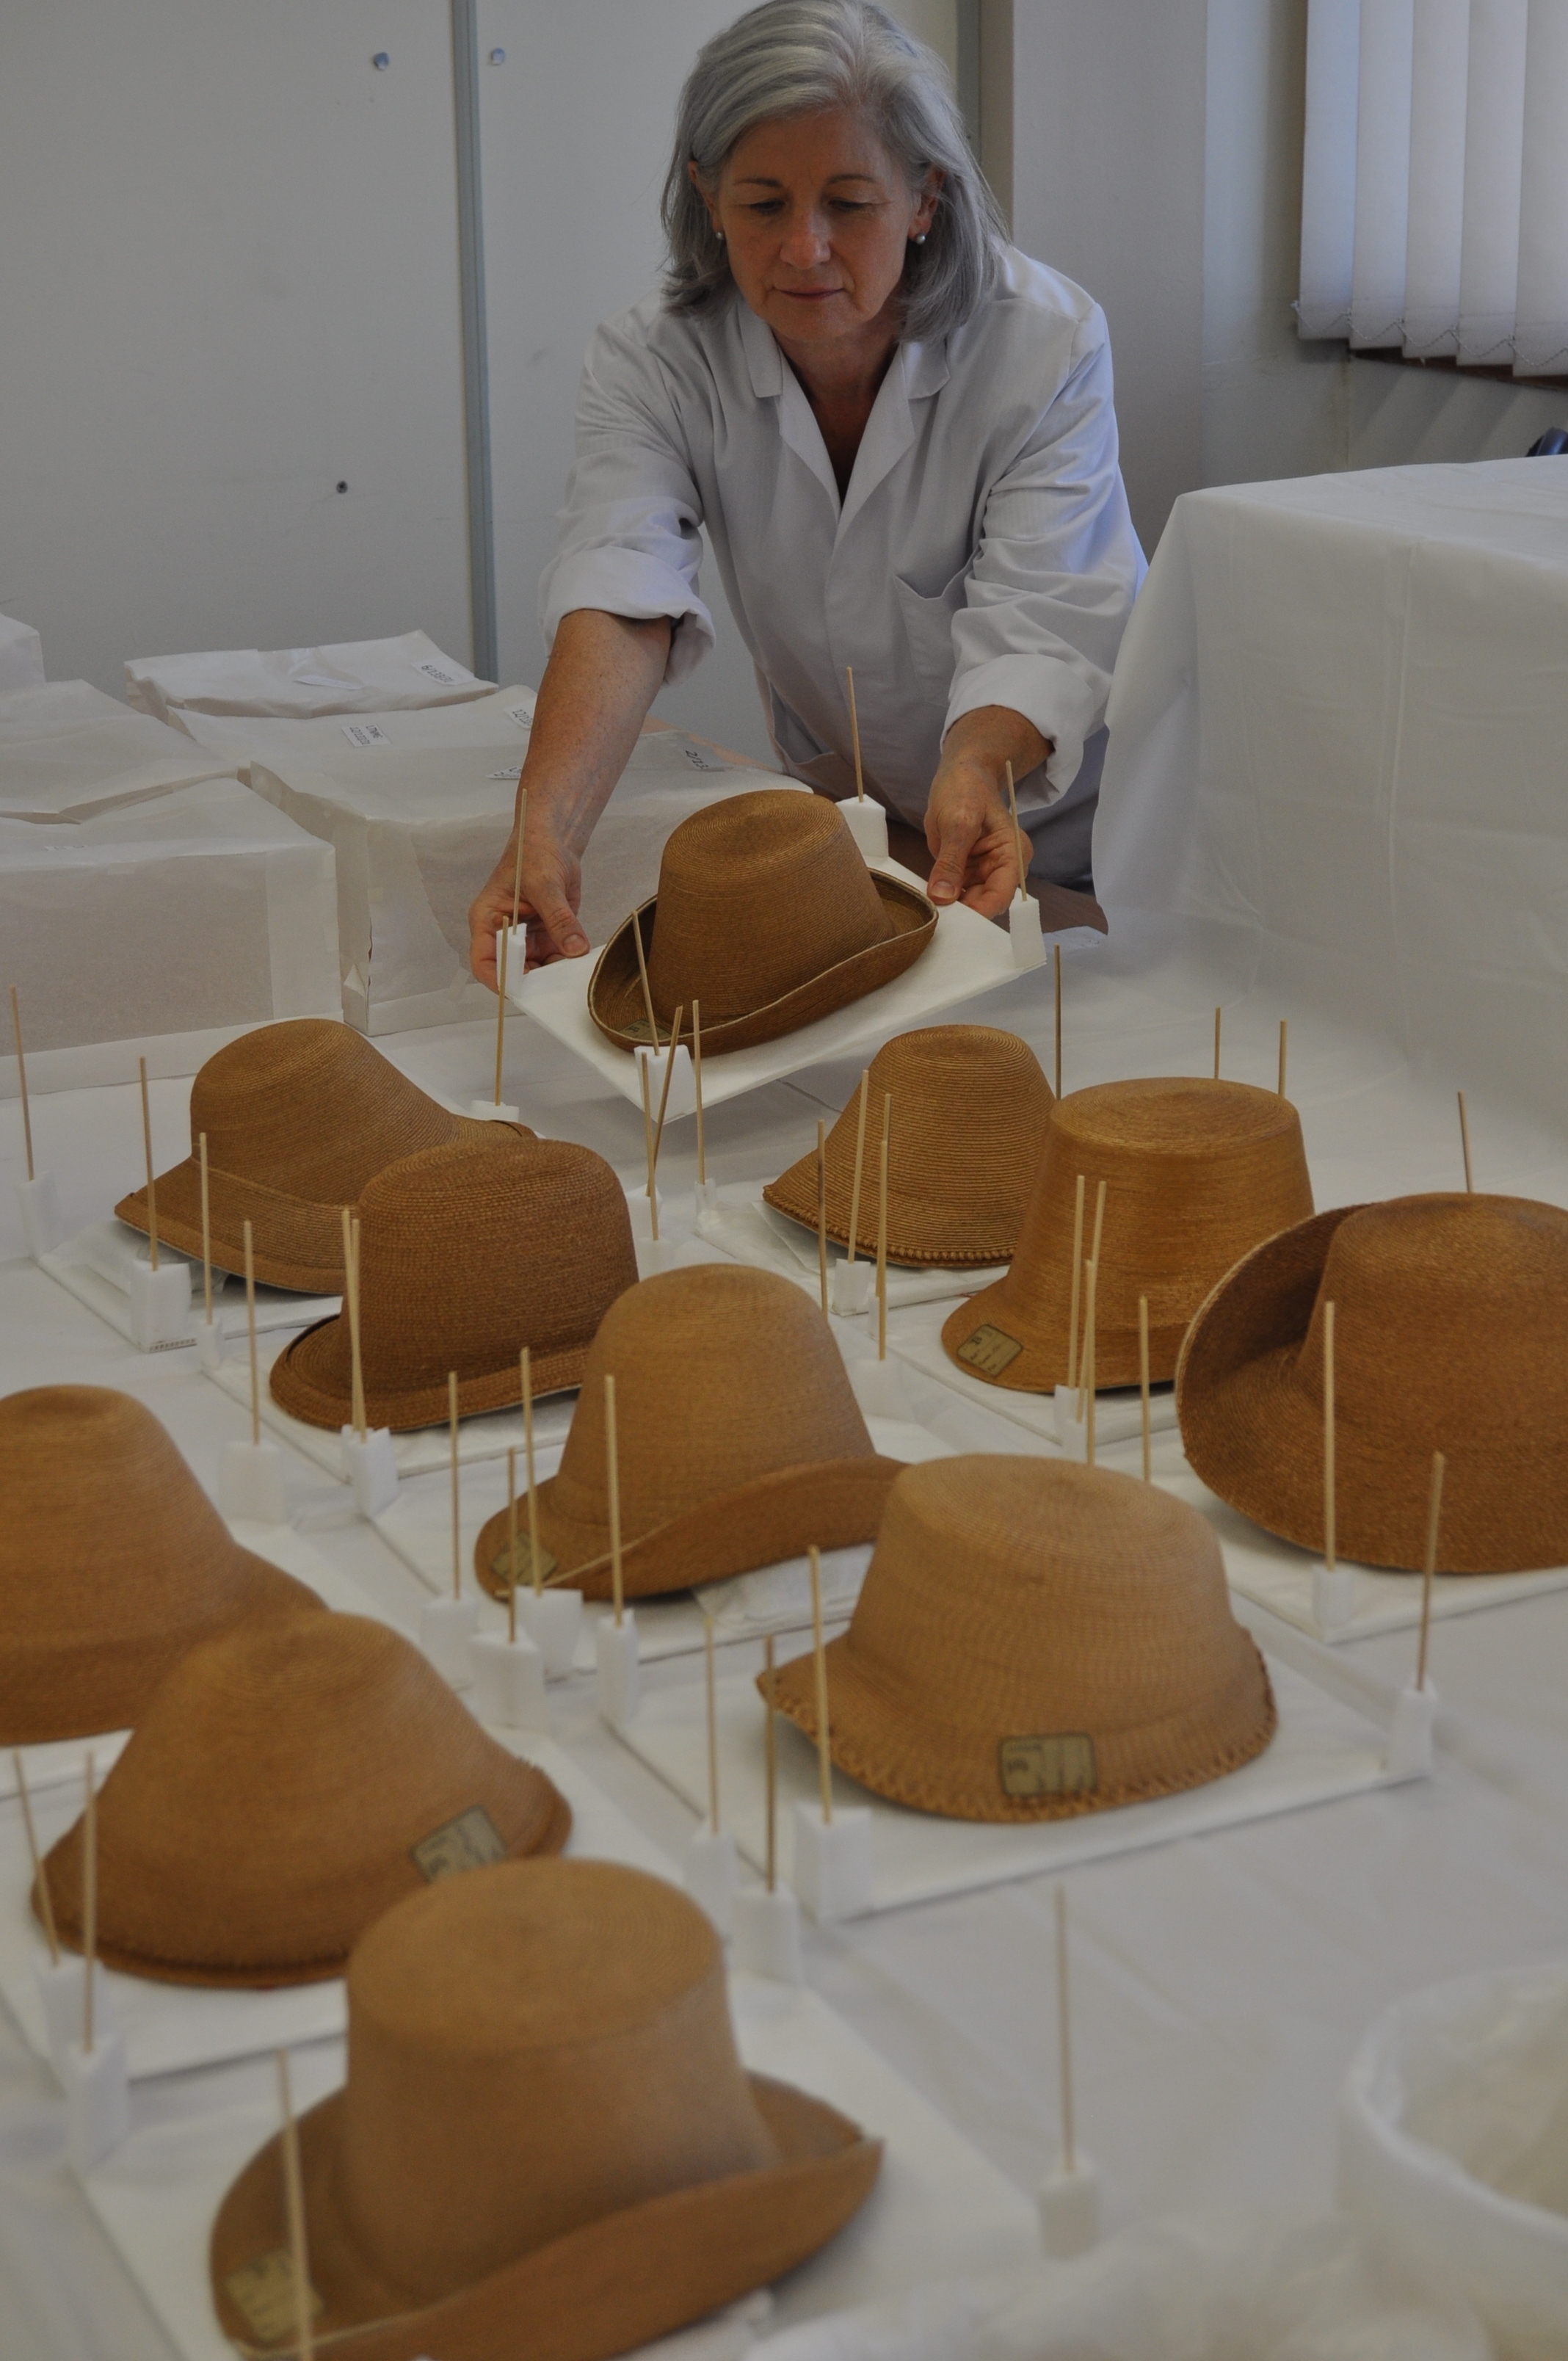 Some of the conserved hats on support forms, in preparation for storage